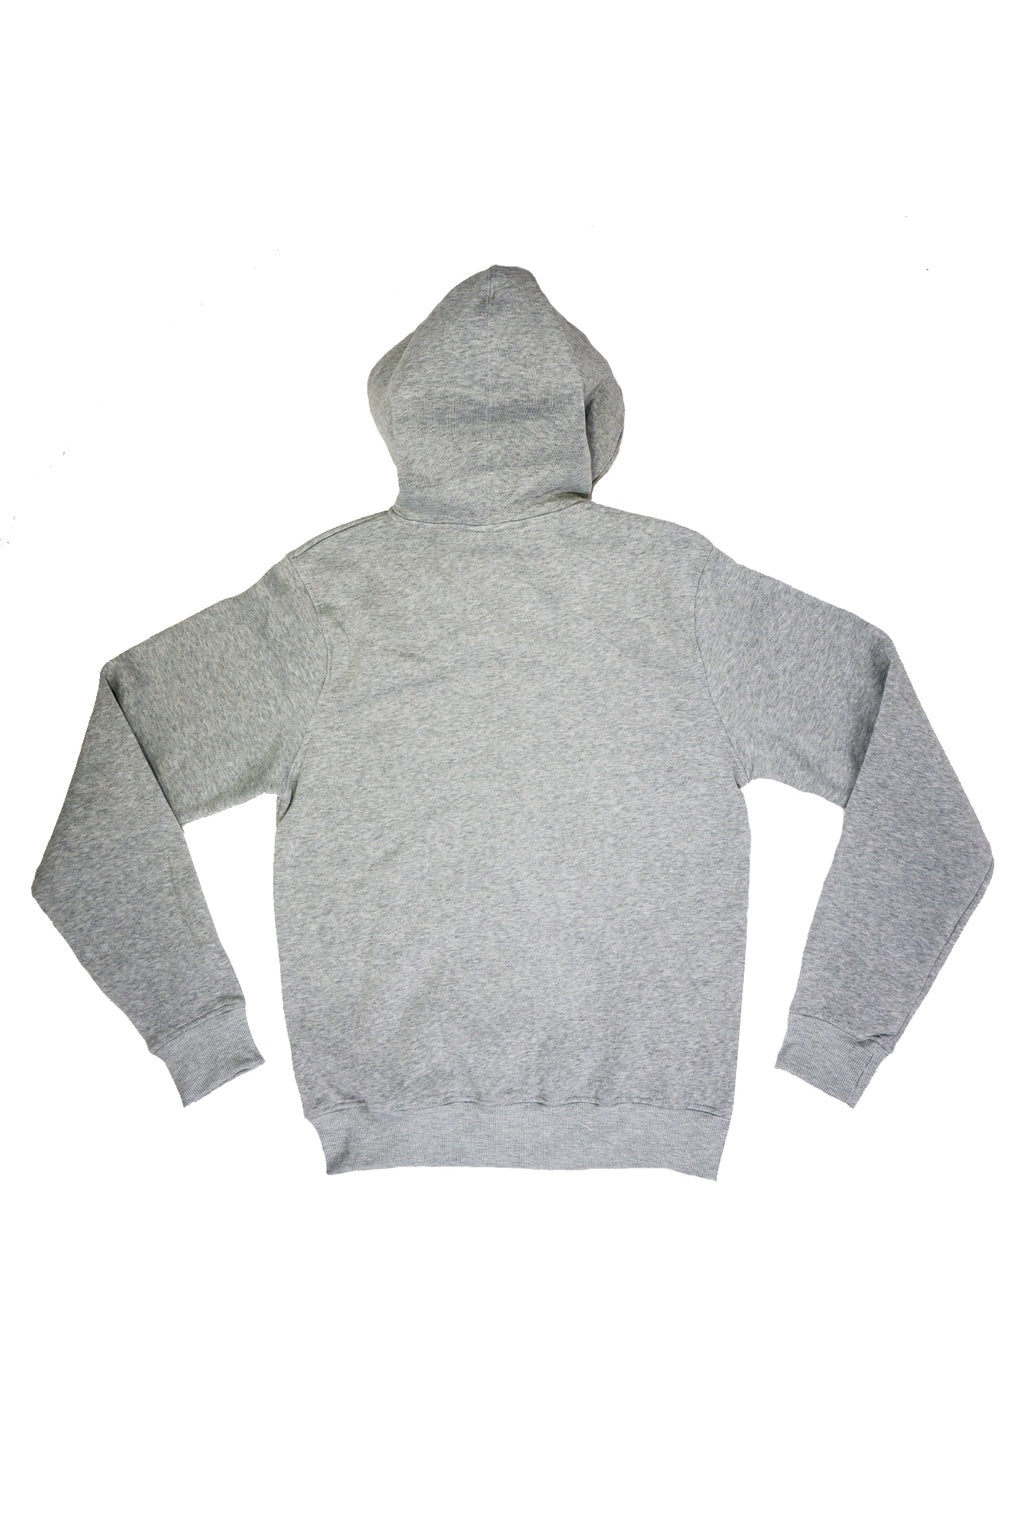 AAO FASHION MENS BASIC FLEECE ZIPUP